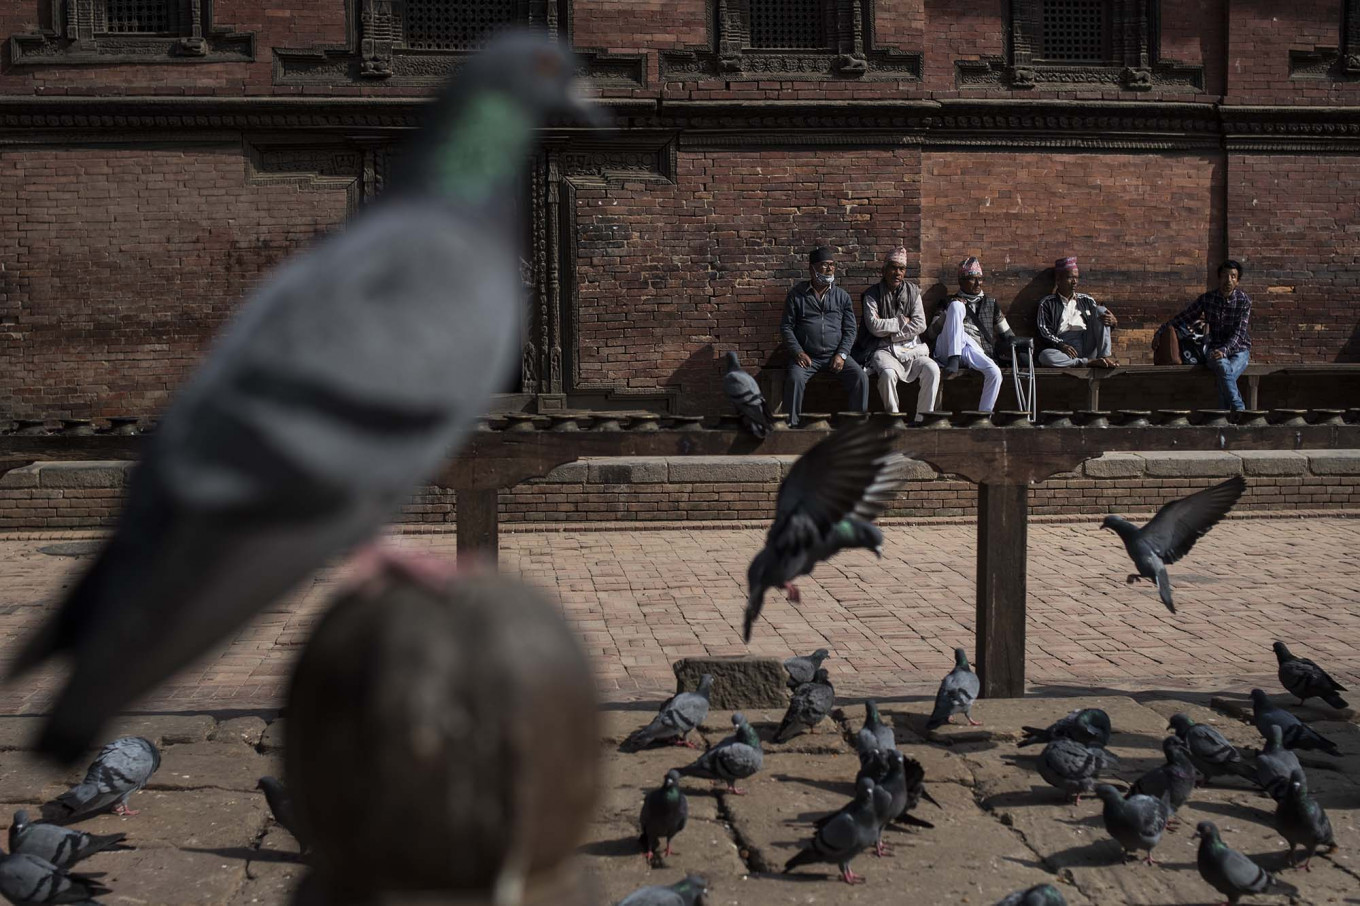 Locals love to spend their time sitting in Patan Square, where pigeons roam freely. JP/Rosa Panggabean